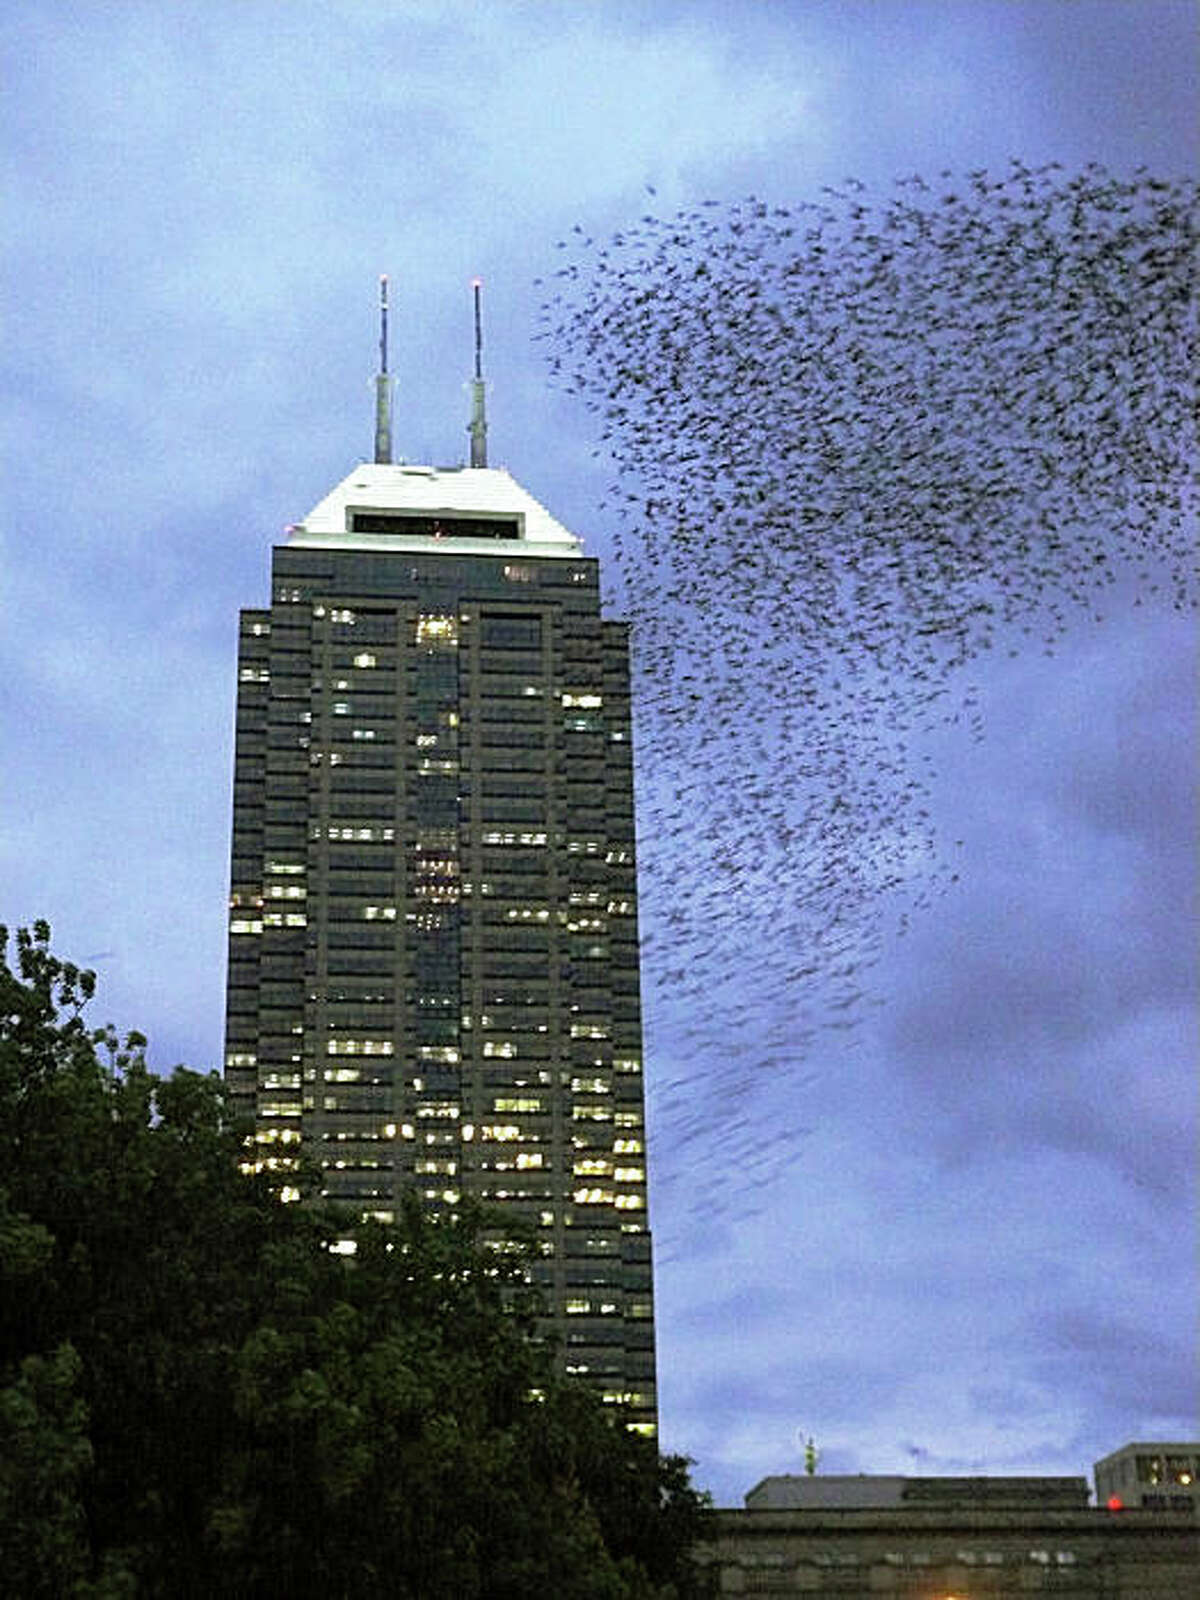 This undated image provided by the U.S. Department of Agriculture shows a flock of European starlings massing in downtown Indianapolis, Indiana in the fall of 2008. Starlings have become a nuisance in several urban areas across the country. (AP Photo/USDA)